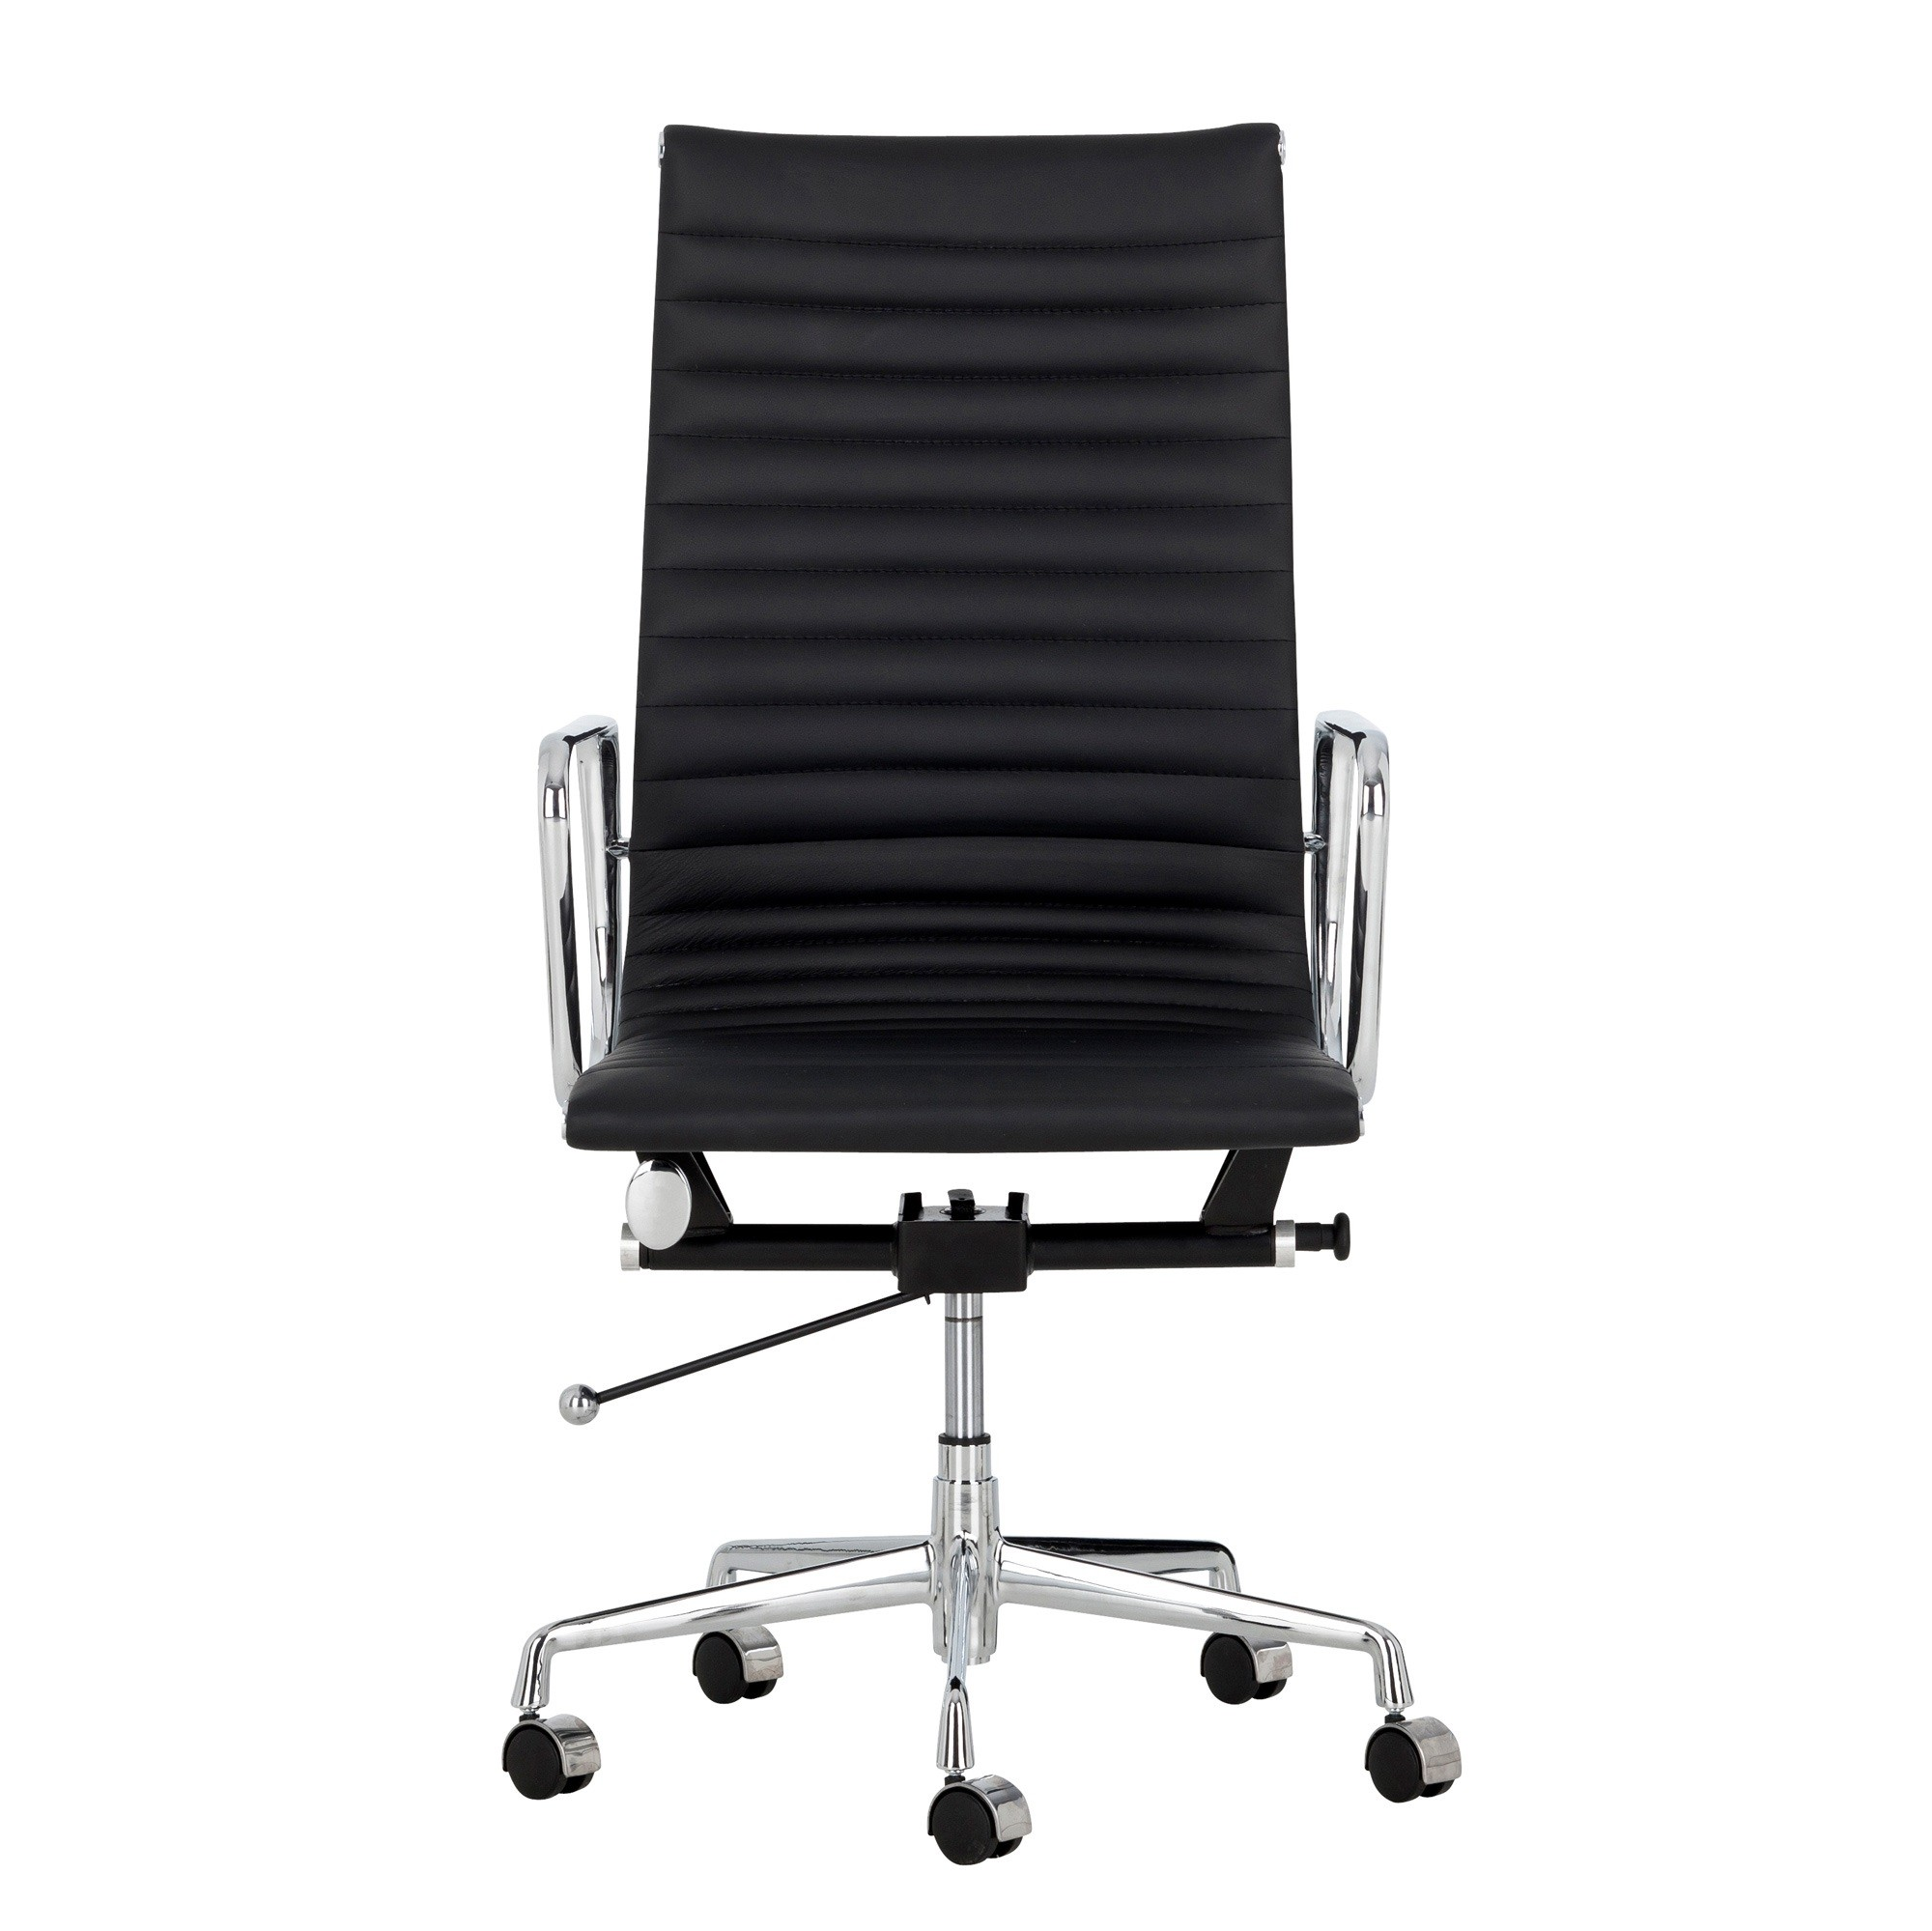 NEW Eames Replica High Back Management Office Chair eBay : 1  from www.ebay.com.au size 2000 x 1999 jpeg 294kB